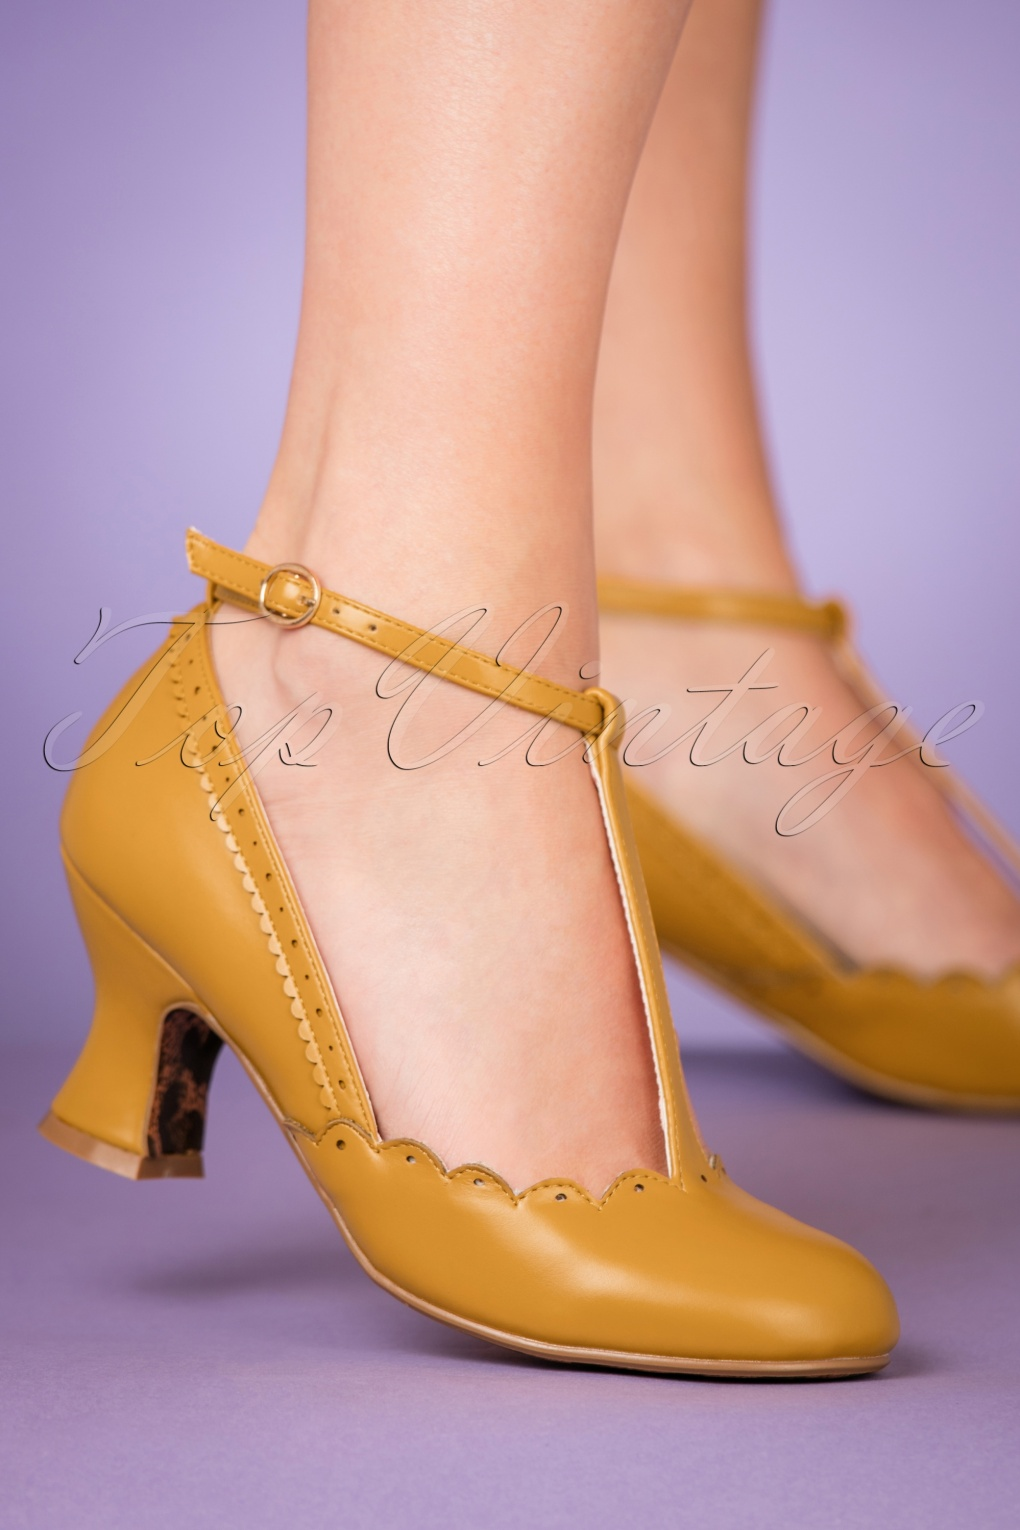 60s Shoes, Boots | 70s Shoes, Platforms, Boots 50s Penny T-Strap Pumps in Mustard Yellow £59.50 AT vintagedancer.com